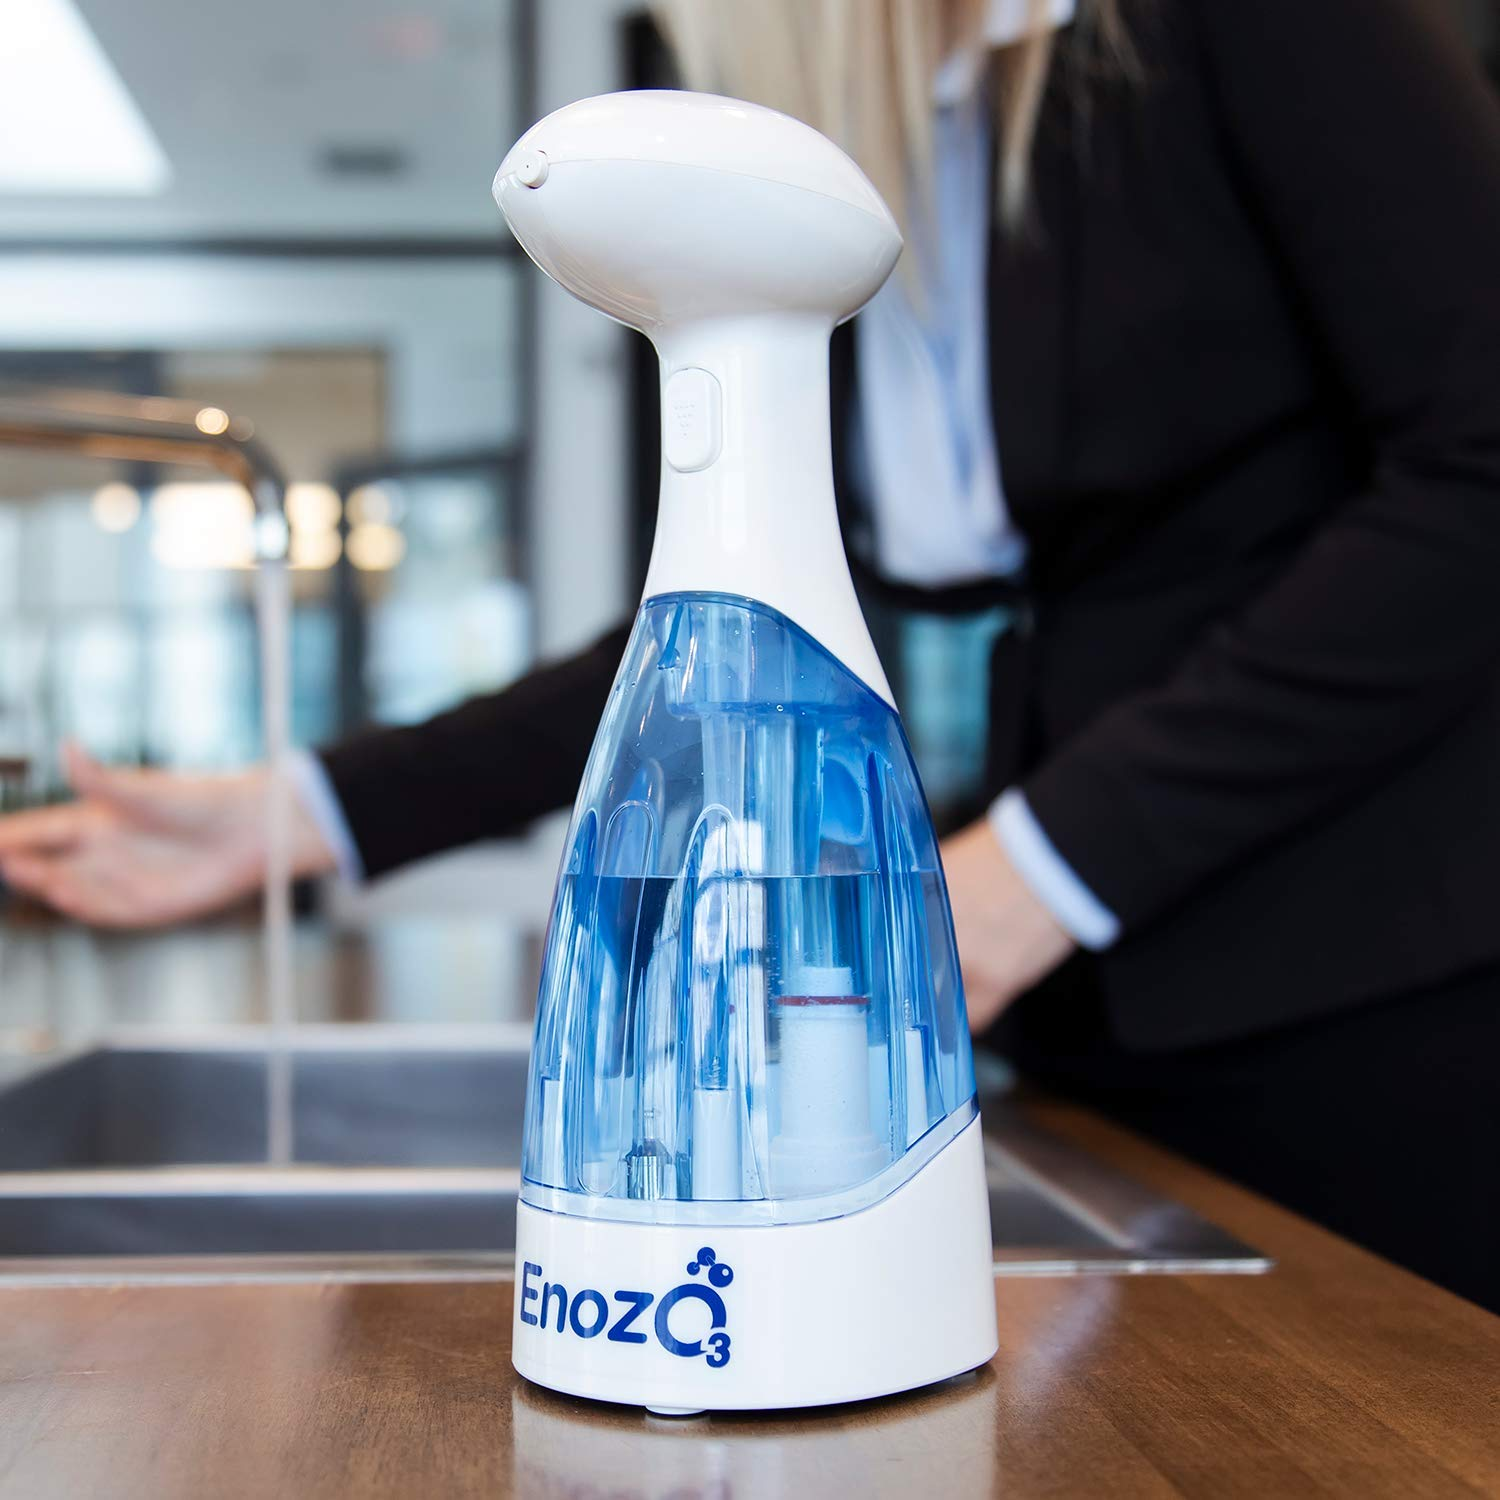 Enozo EnozoPro Spray Bottle (Sanitise, Clean and Deodorize) : Amazon.co.uk:  Business, Industry & Science